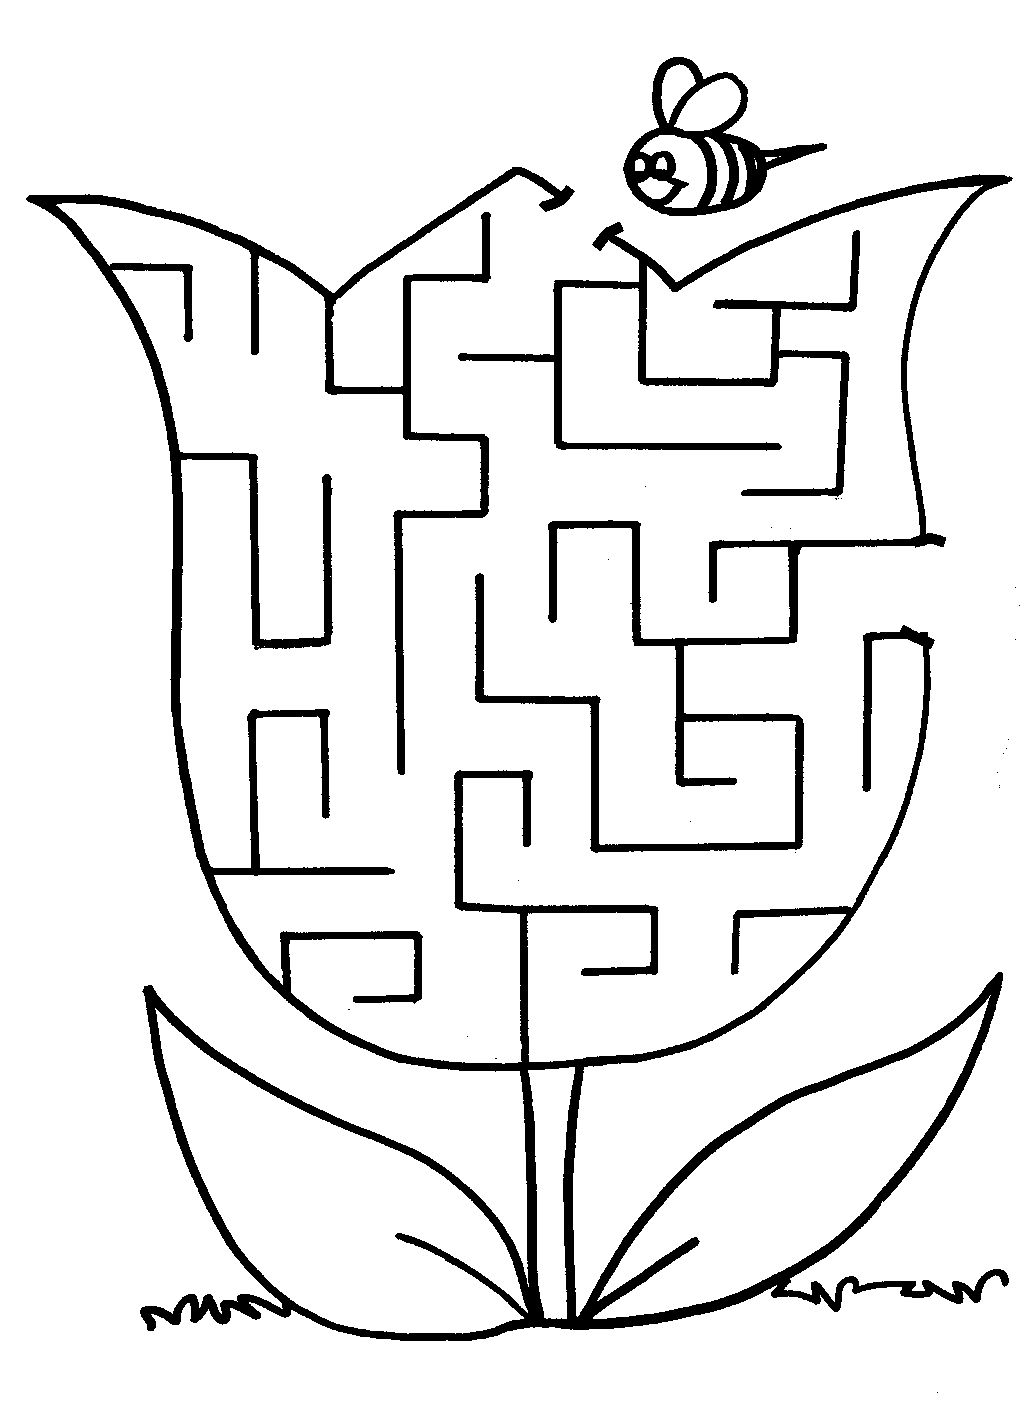 http://www.coloring-pages-and-more.com/dot-to-dot.html ...